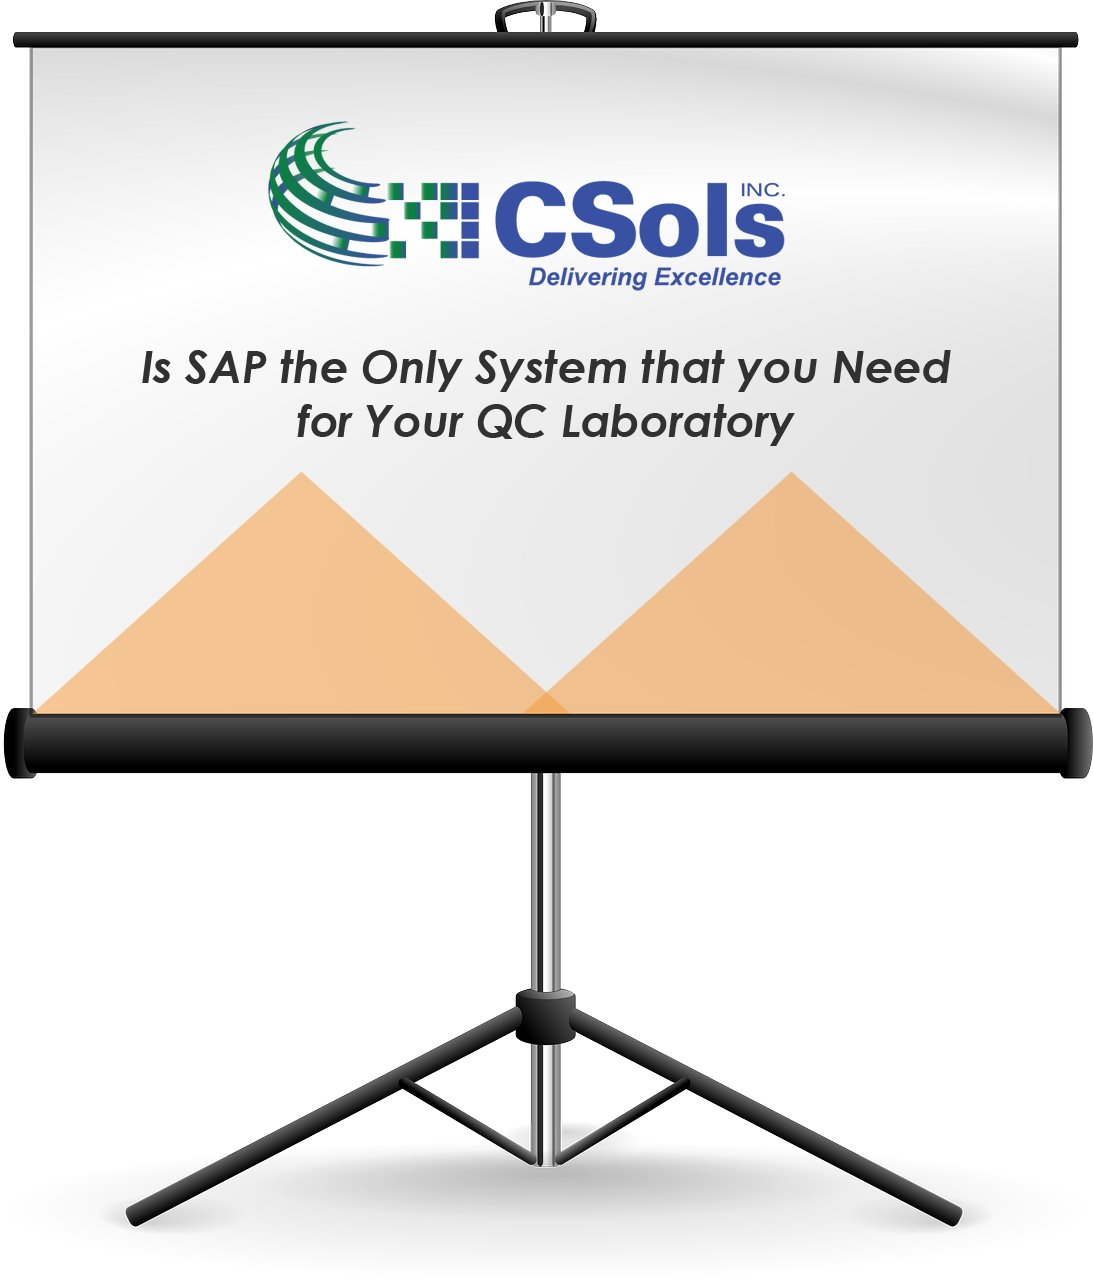 Is SAP the Only System that you need for your QC Lab